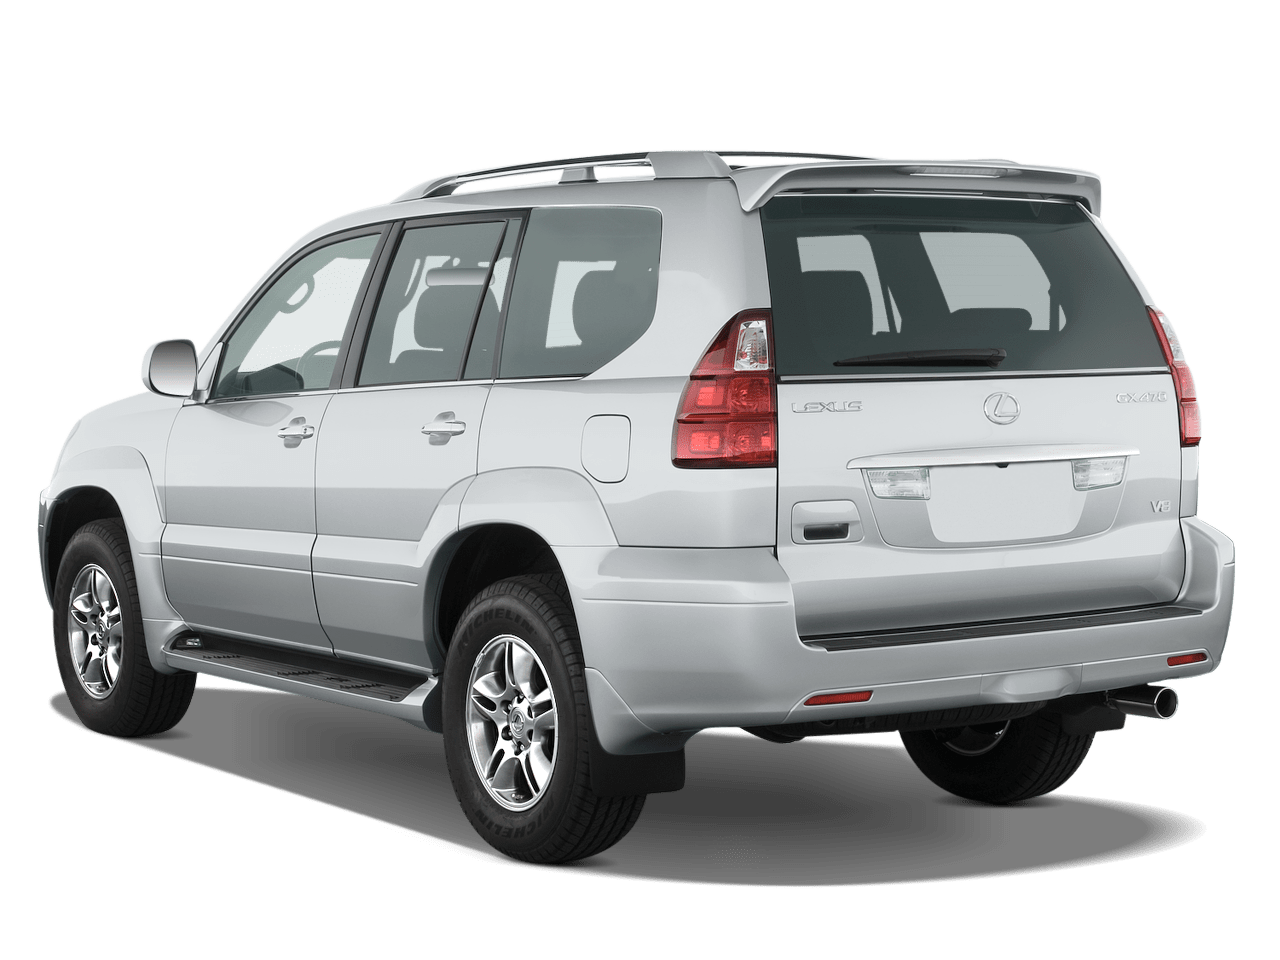 2009 Lexus GX470 Reviews And Rating Motortrend